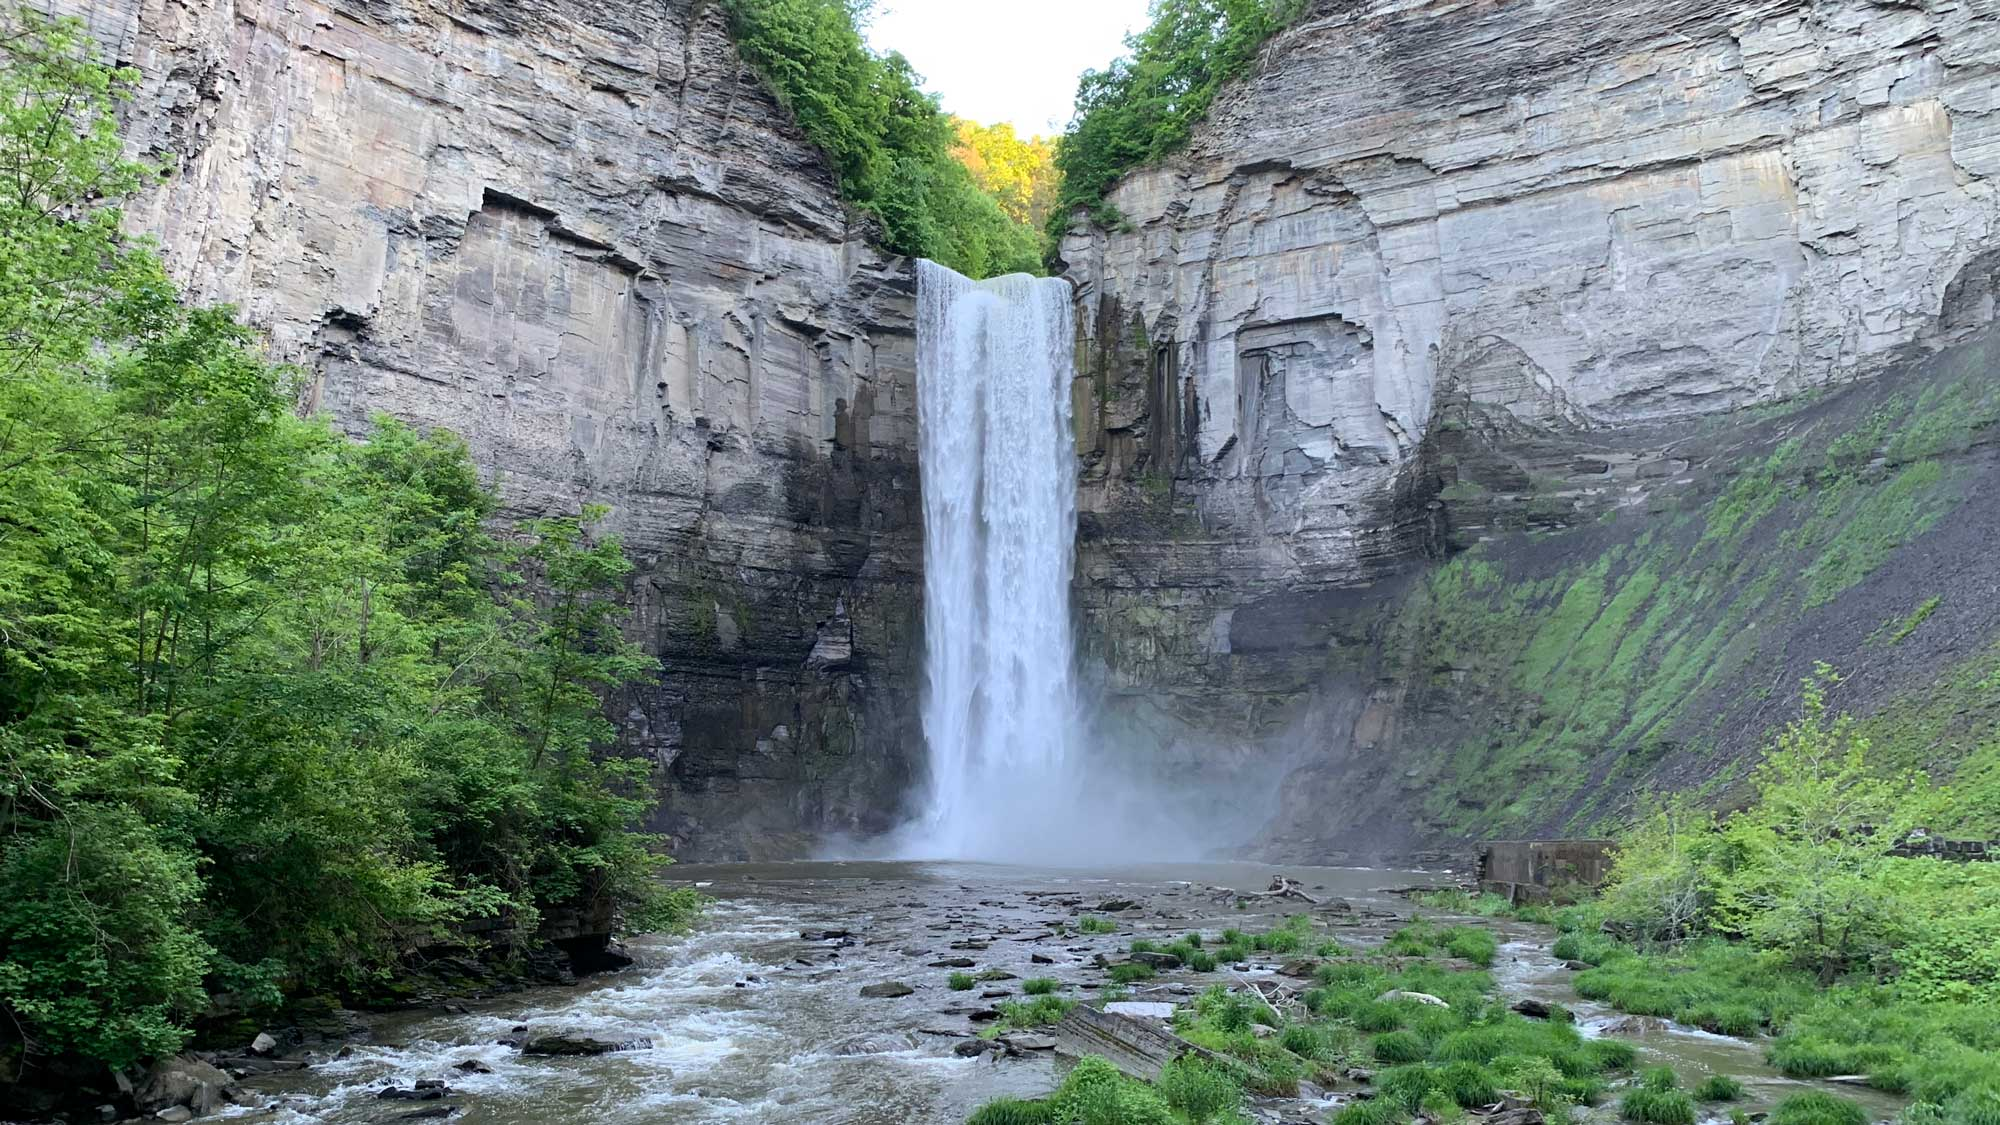 Photograph of Taughannock Falls in Tompkins County, New York.